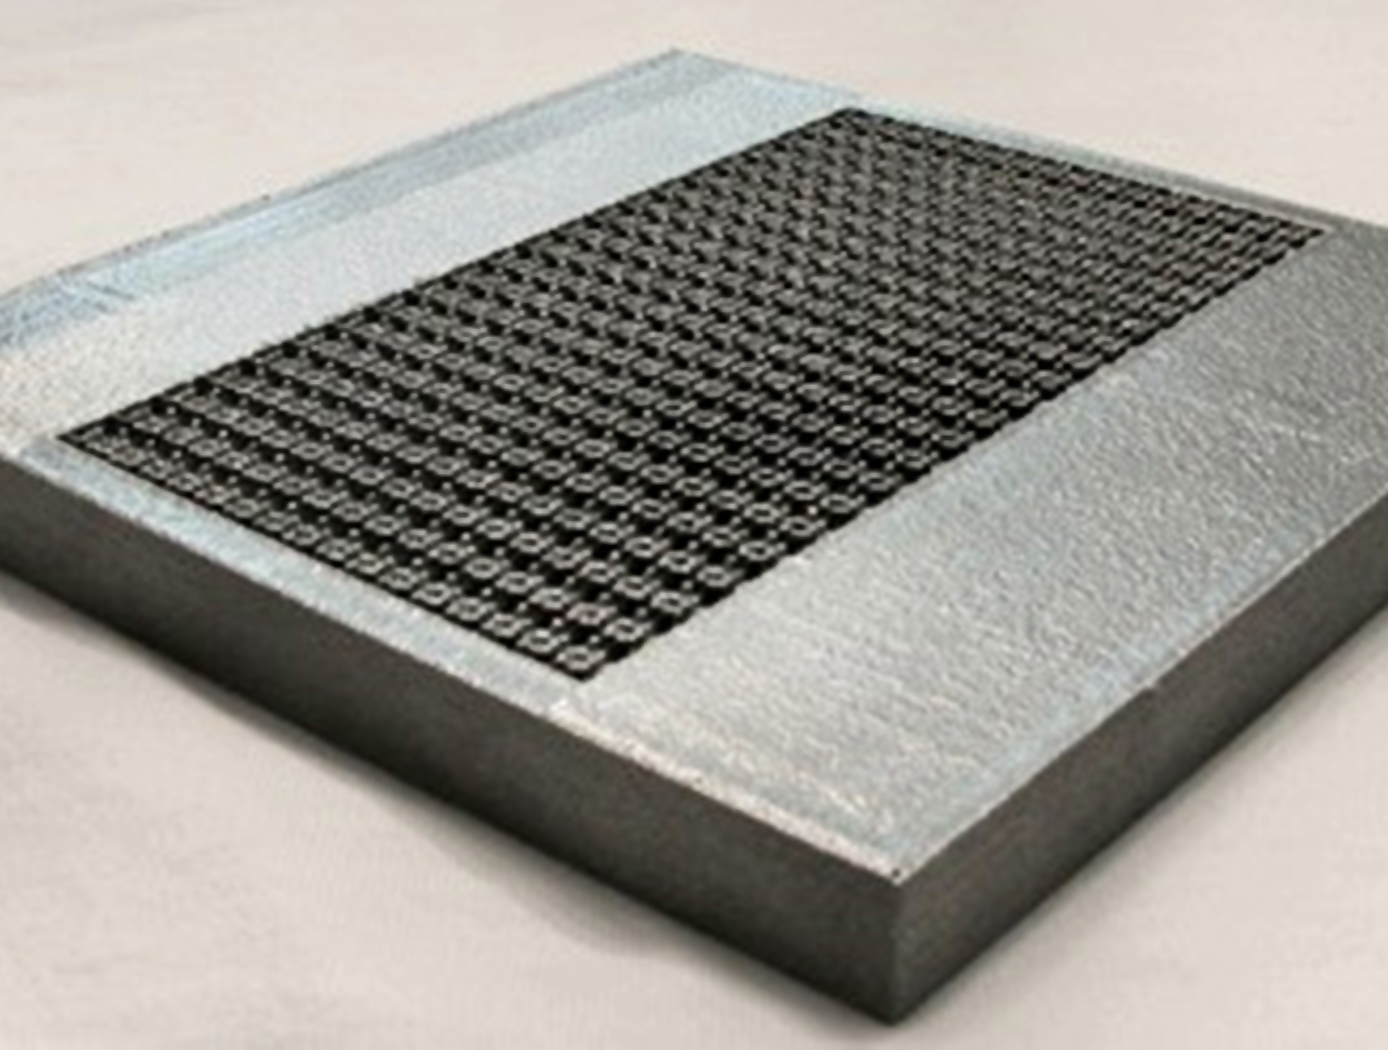 Proof-of-concept with Ti-6Al-4V AM-fabricated structure